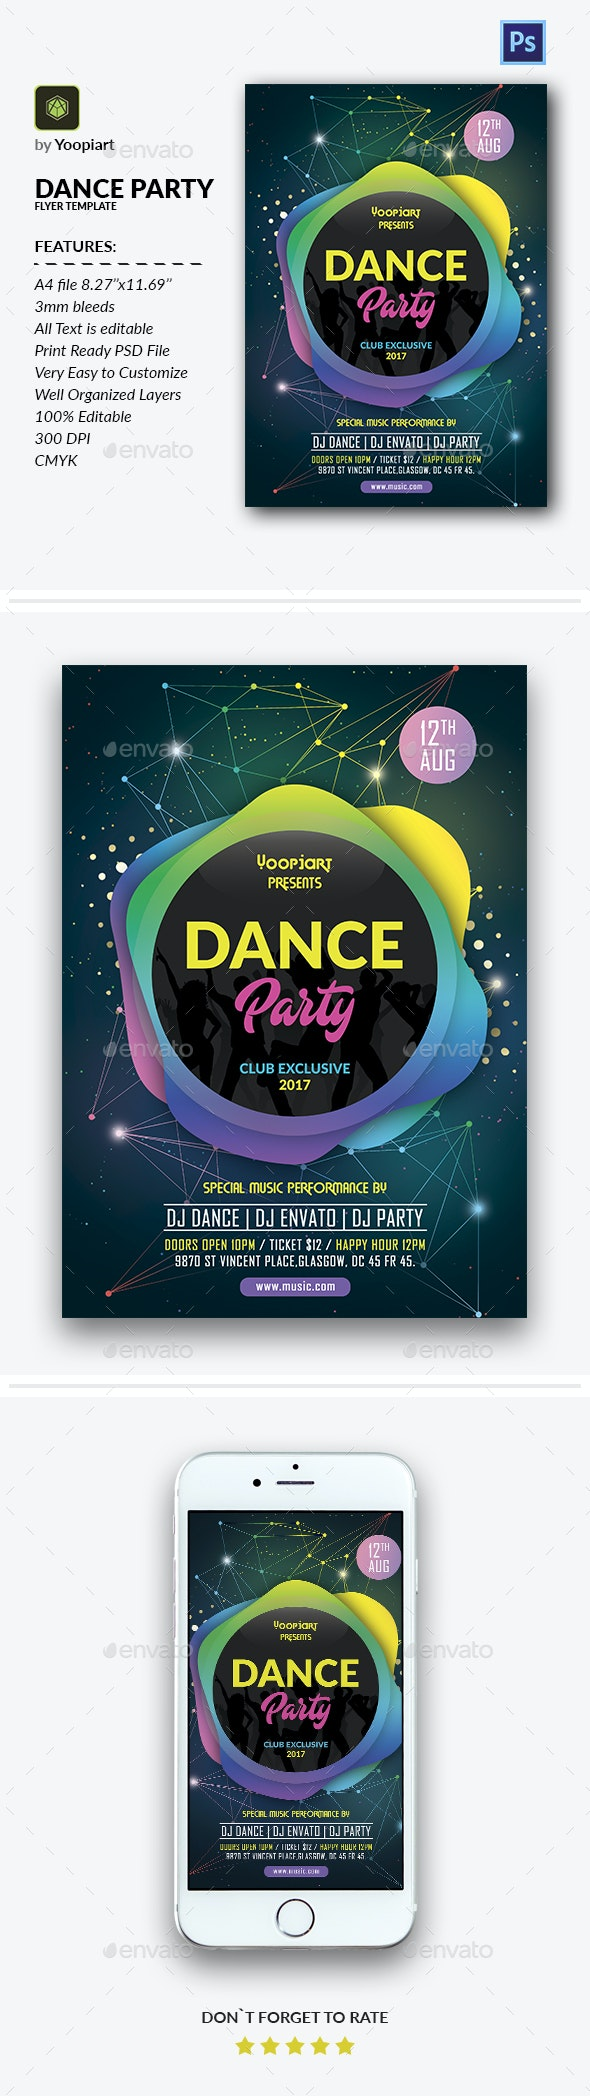 Dance Party Flyer Template - Events Flyers